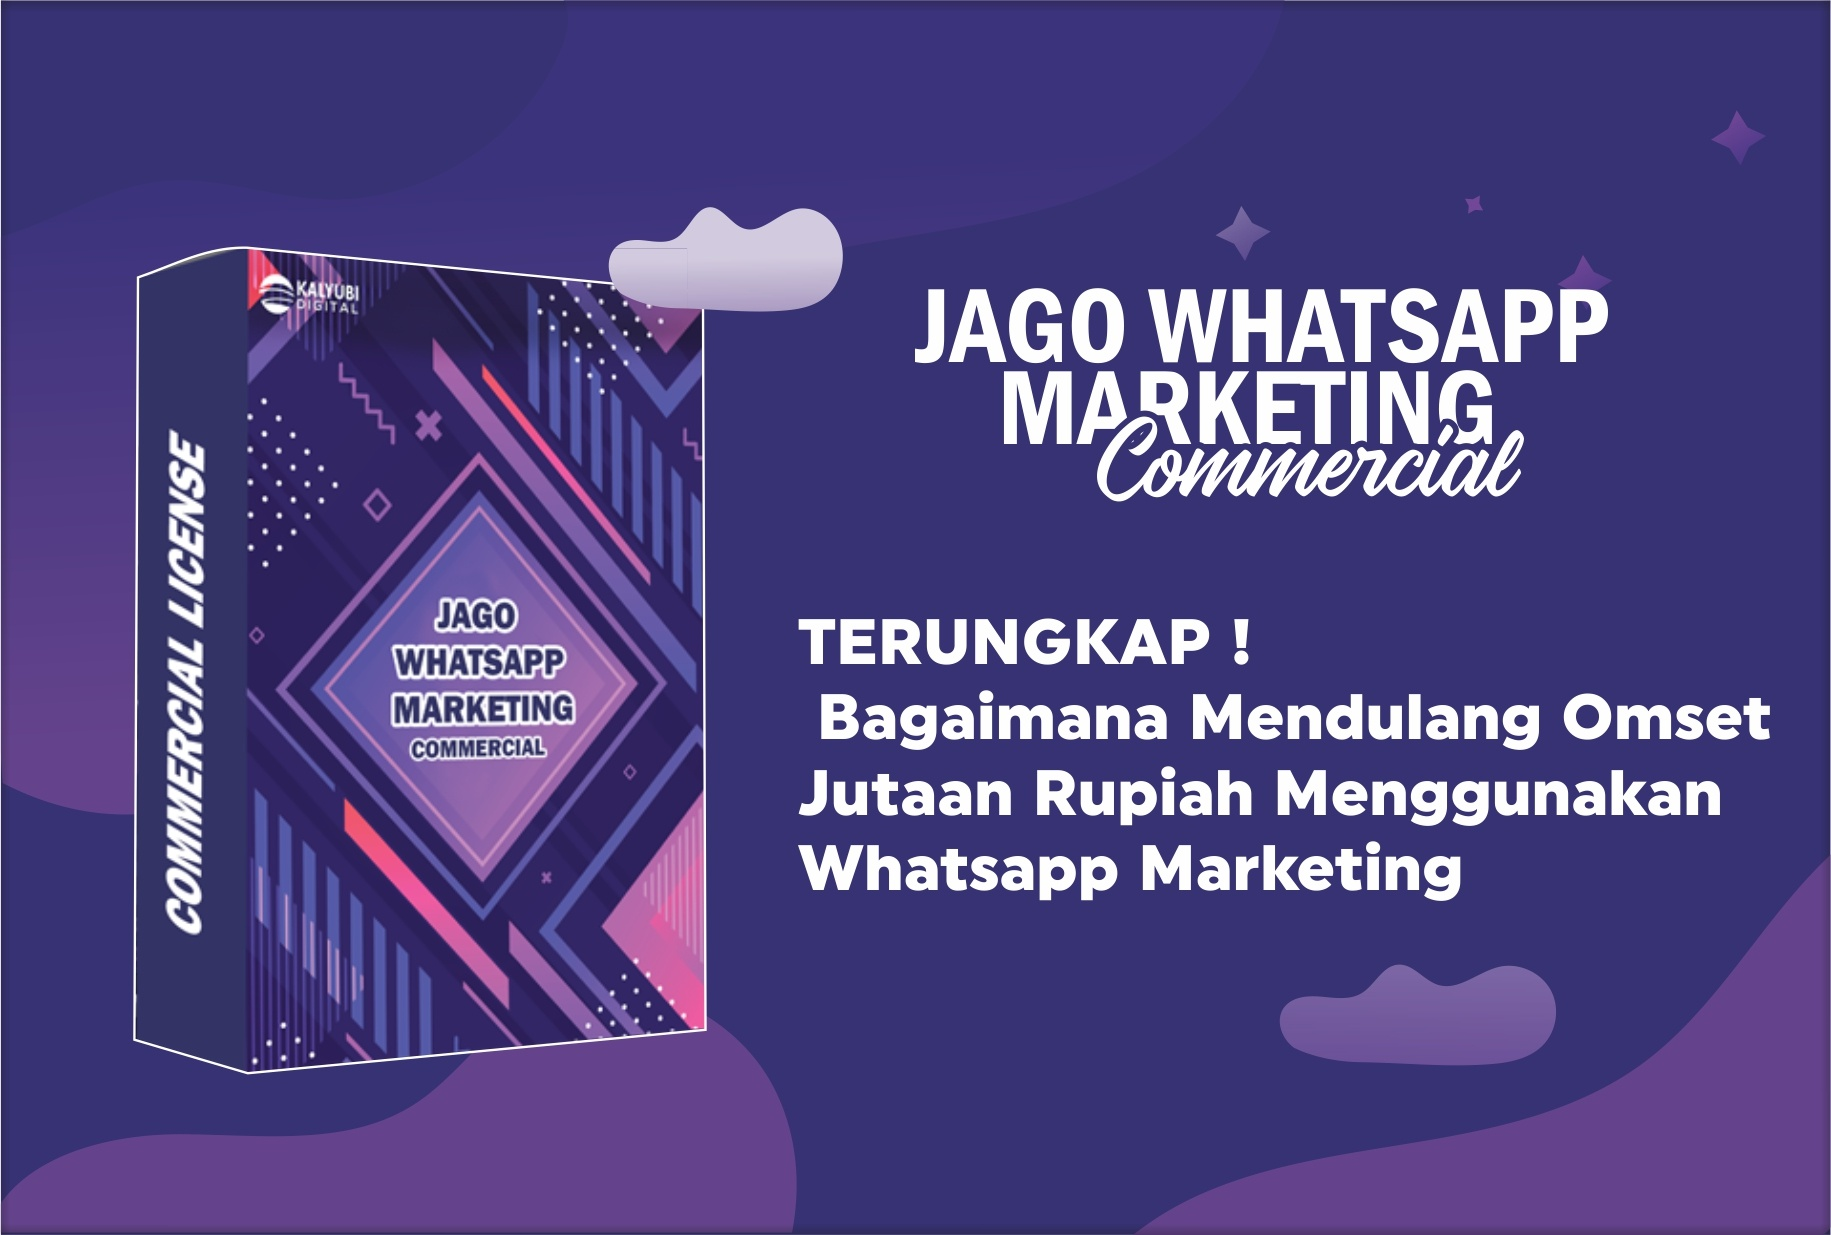 Jago-Whatsapp-Marketing-Commercial.jpg